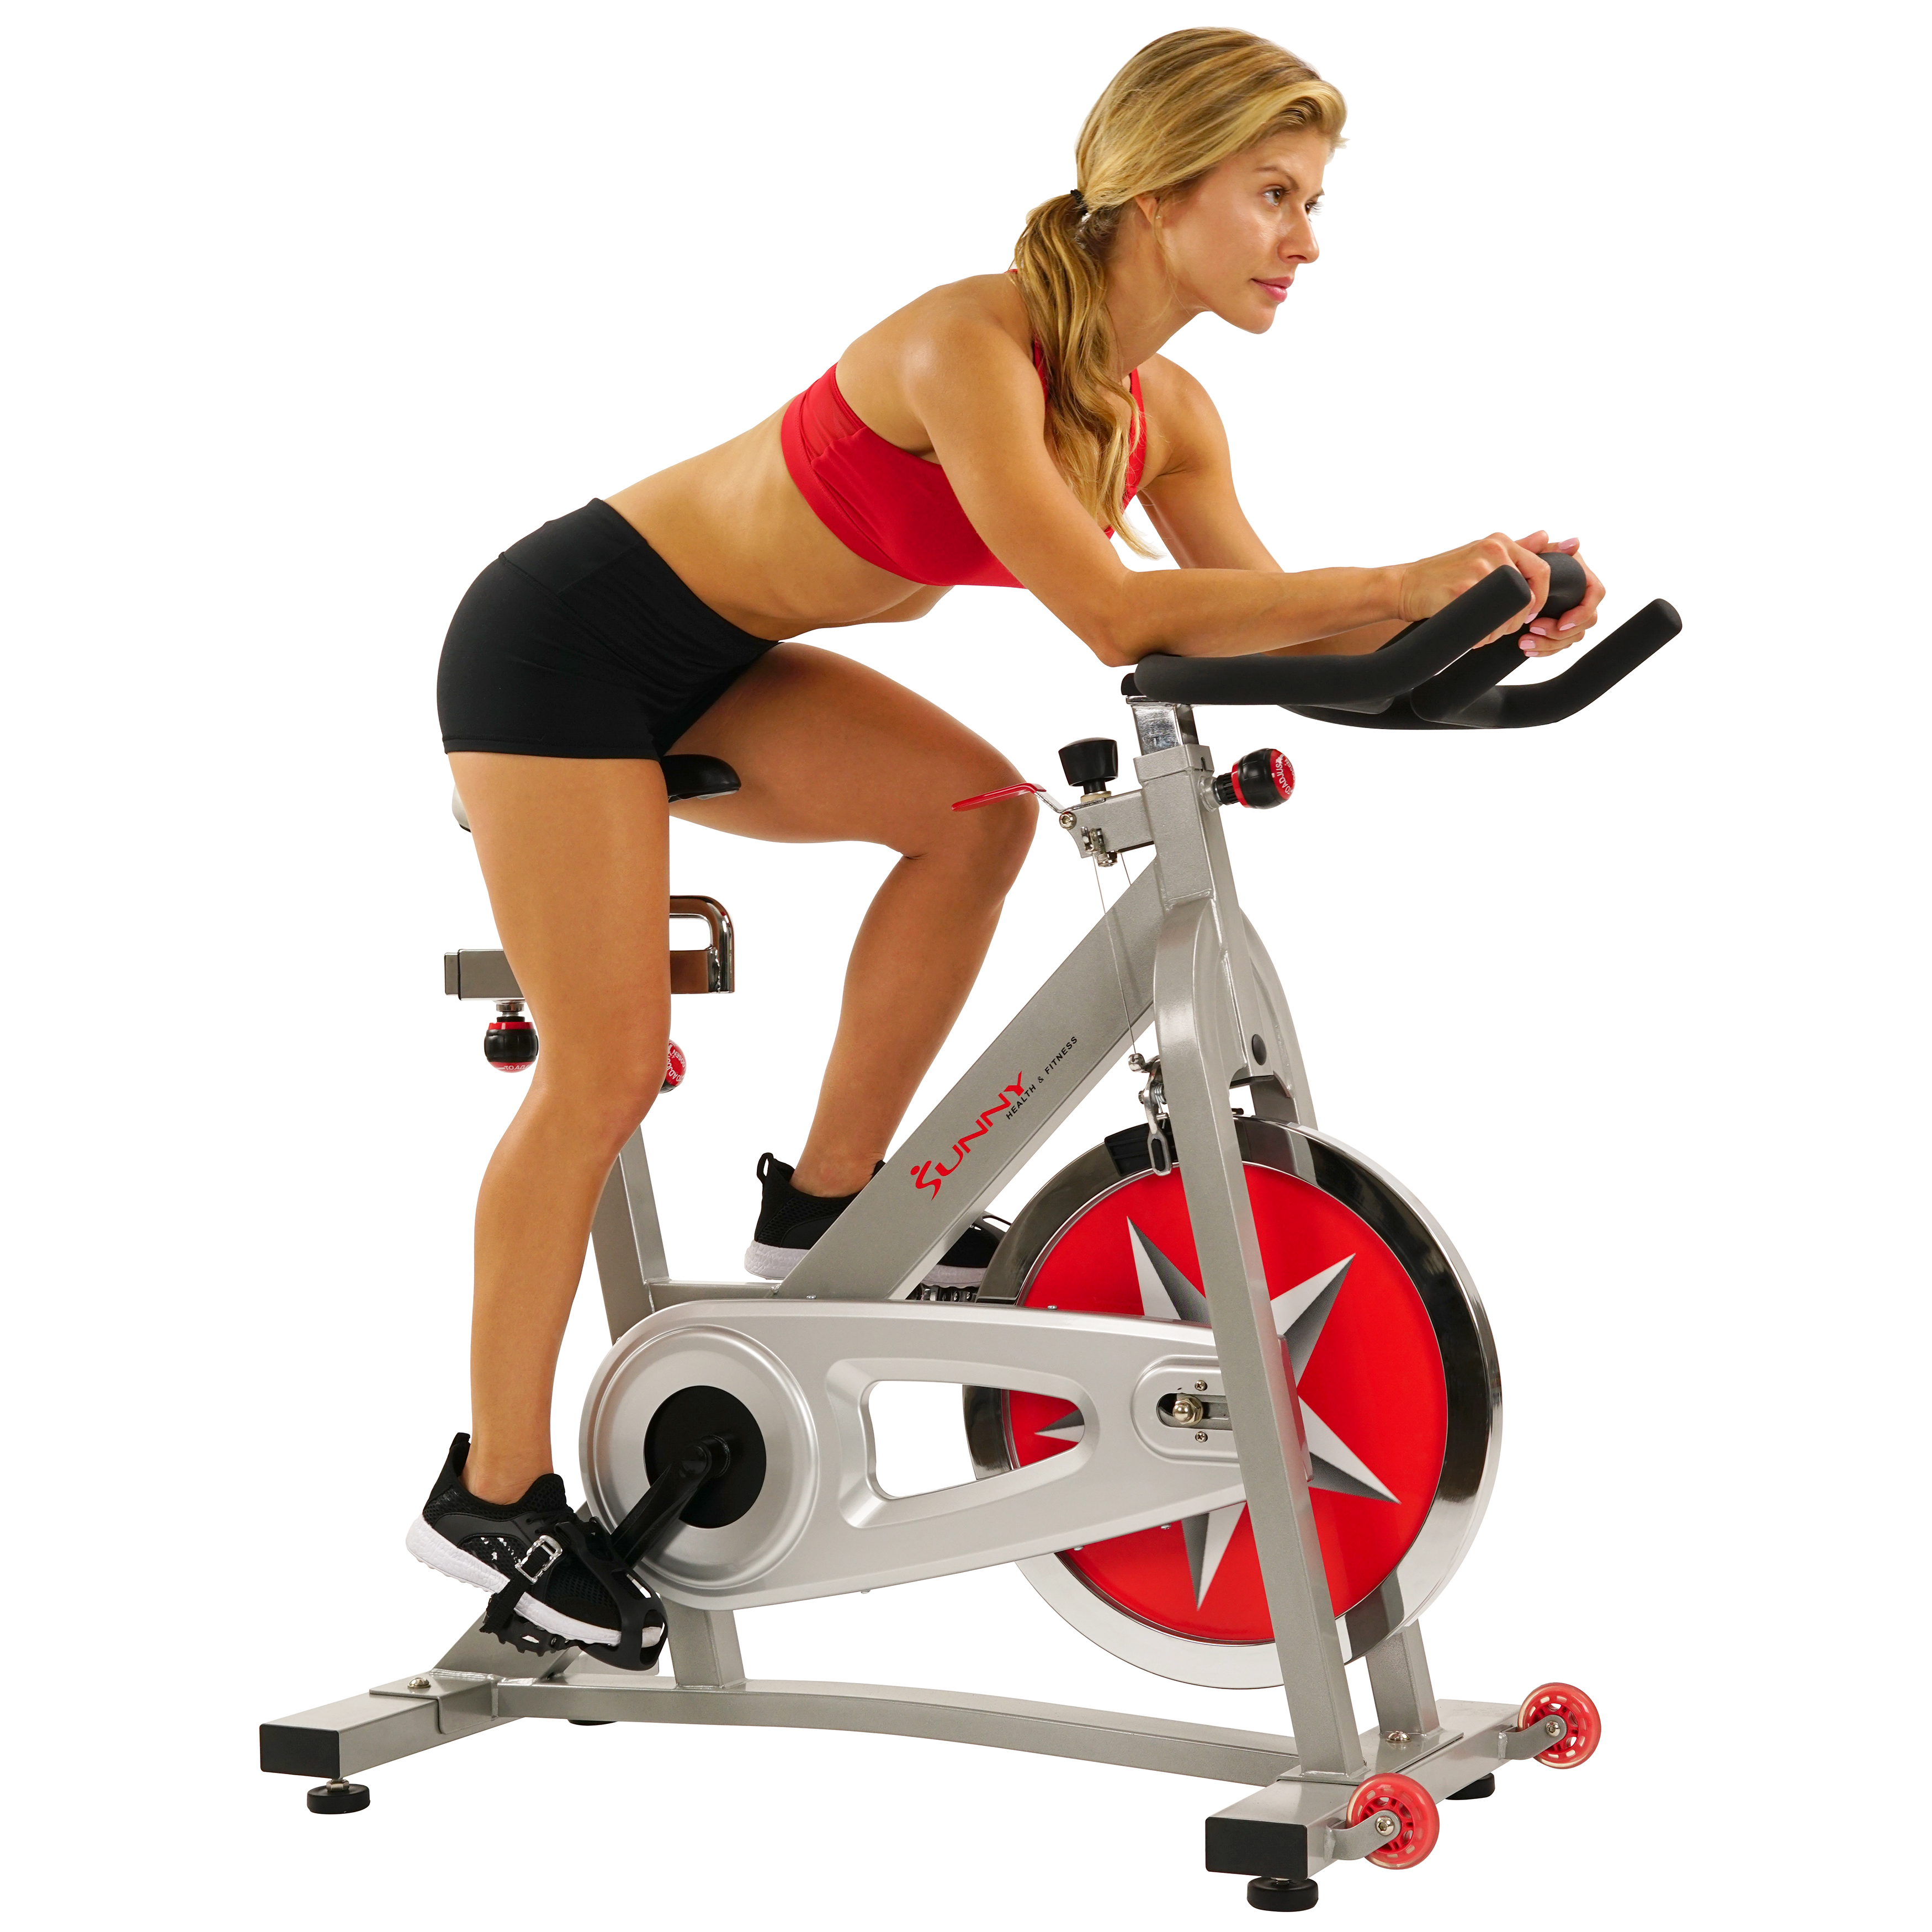 40lb Flywheel Chain Drive Pro Indoor Cycling Exercise Bike by Sunny Helath & Fitness SF-B901 by Sunny Health & Fitness